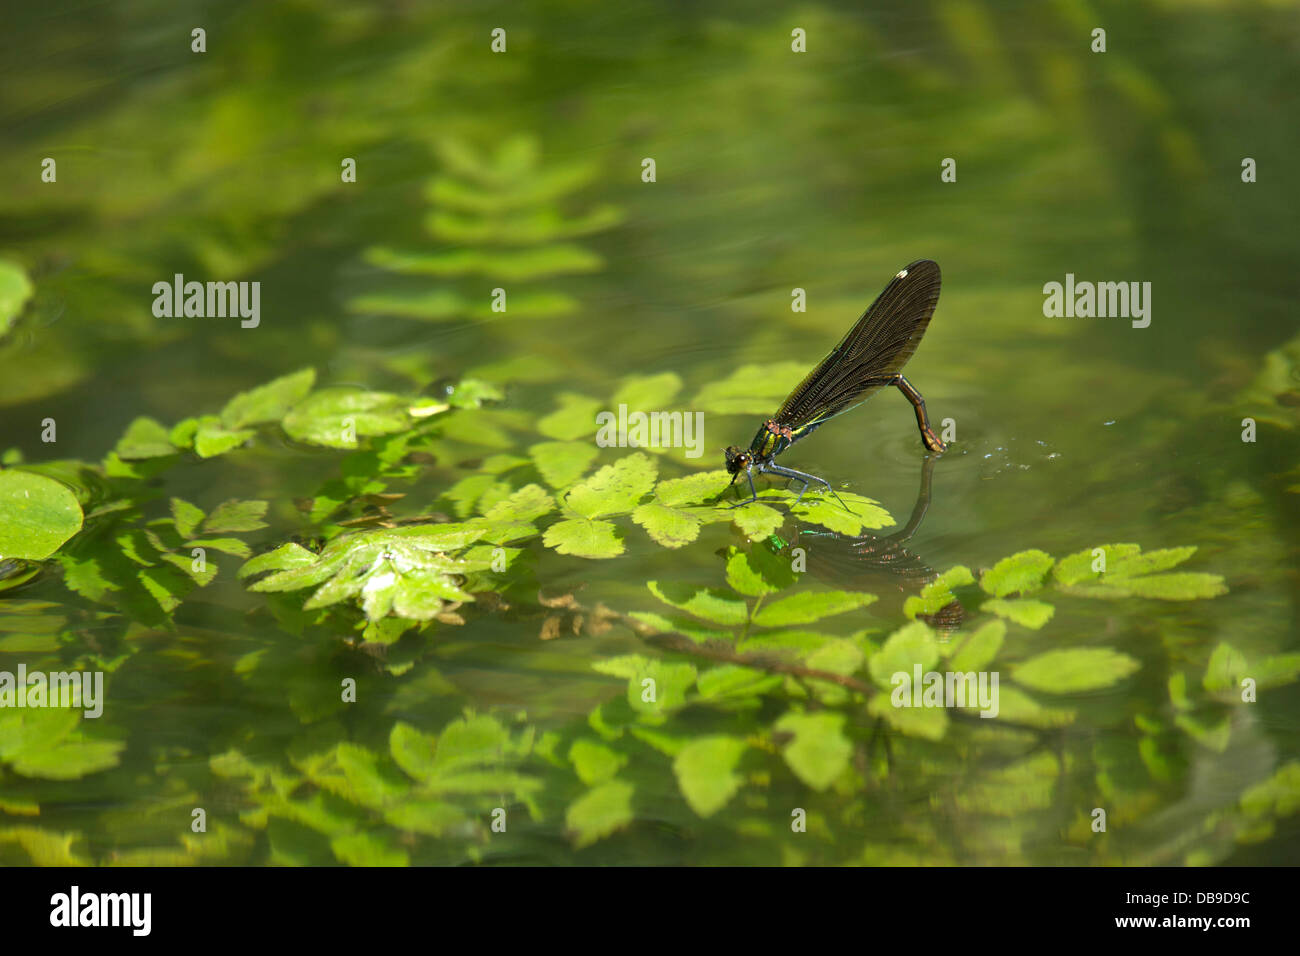 A damselfly laying eggs in the water - Stock Image